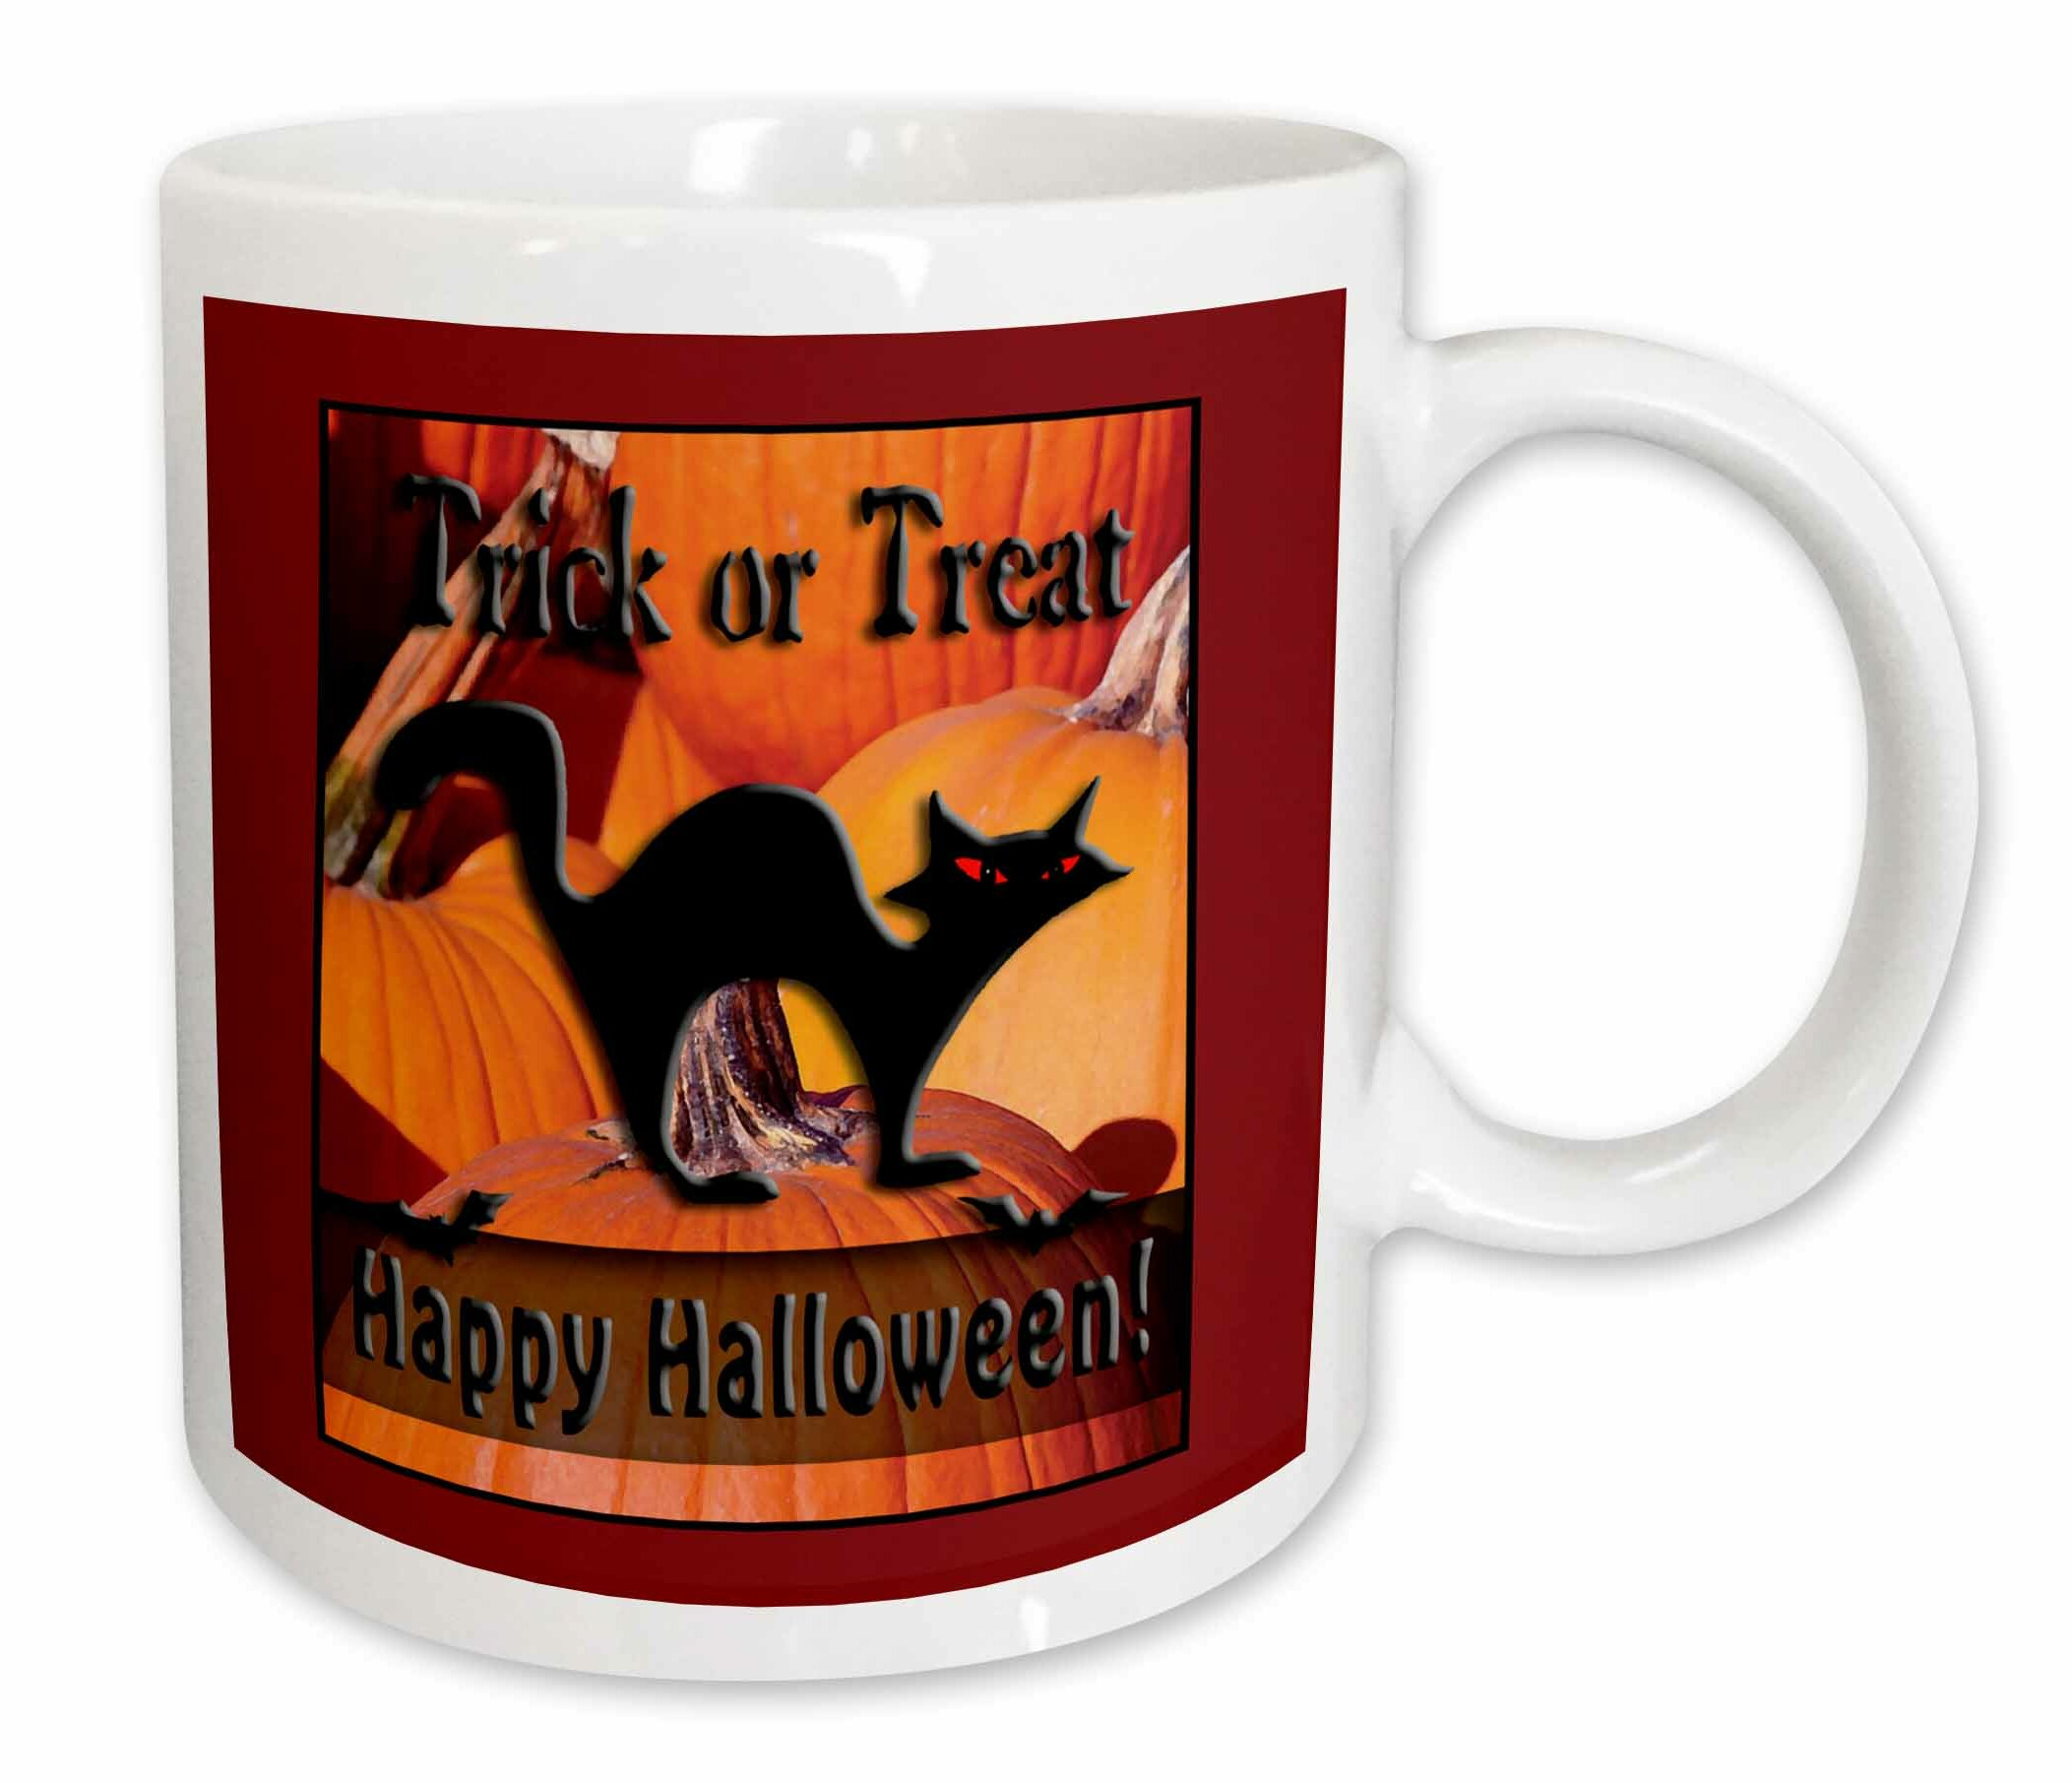 East Urban Home Cat On Pumpkins Trick Or Treat Happy Halloween Coffee Mug Wayfair